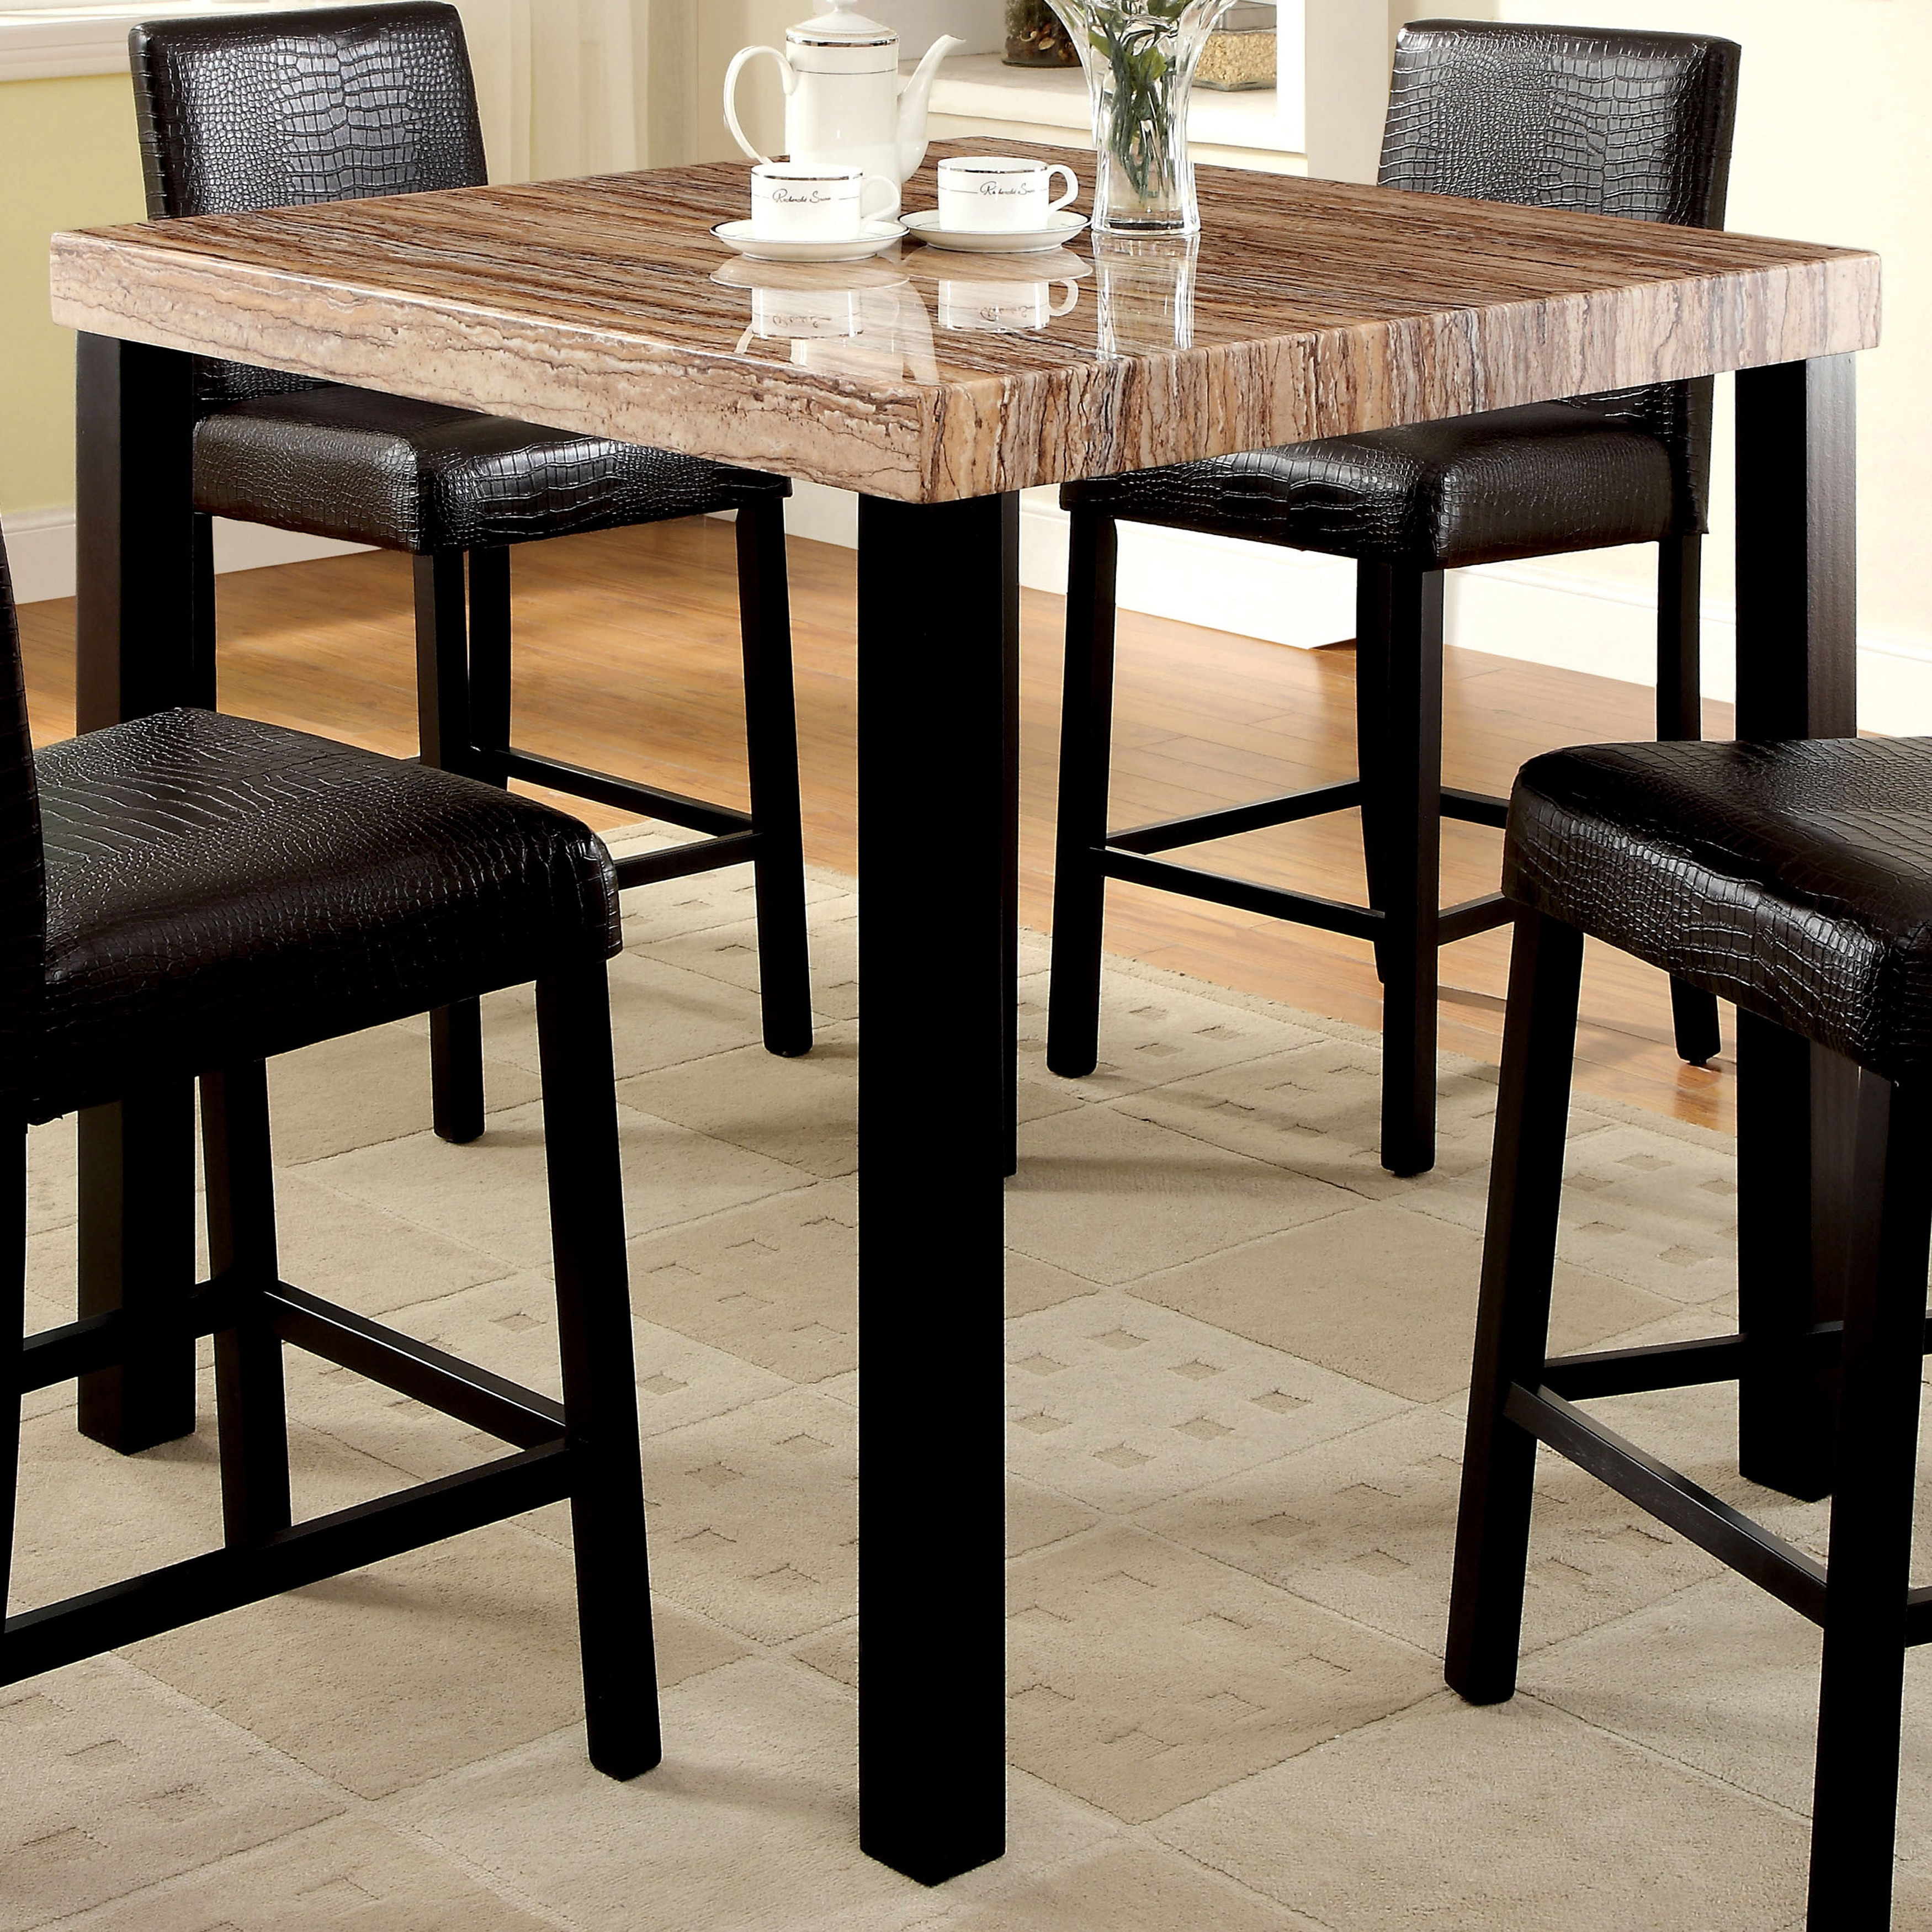 Furniture of America Dymen Contemporary Faux Marble Top B...